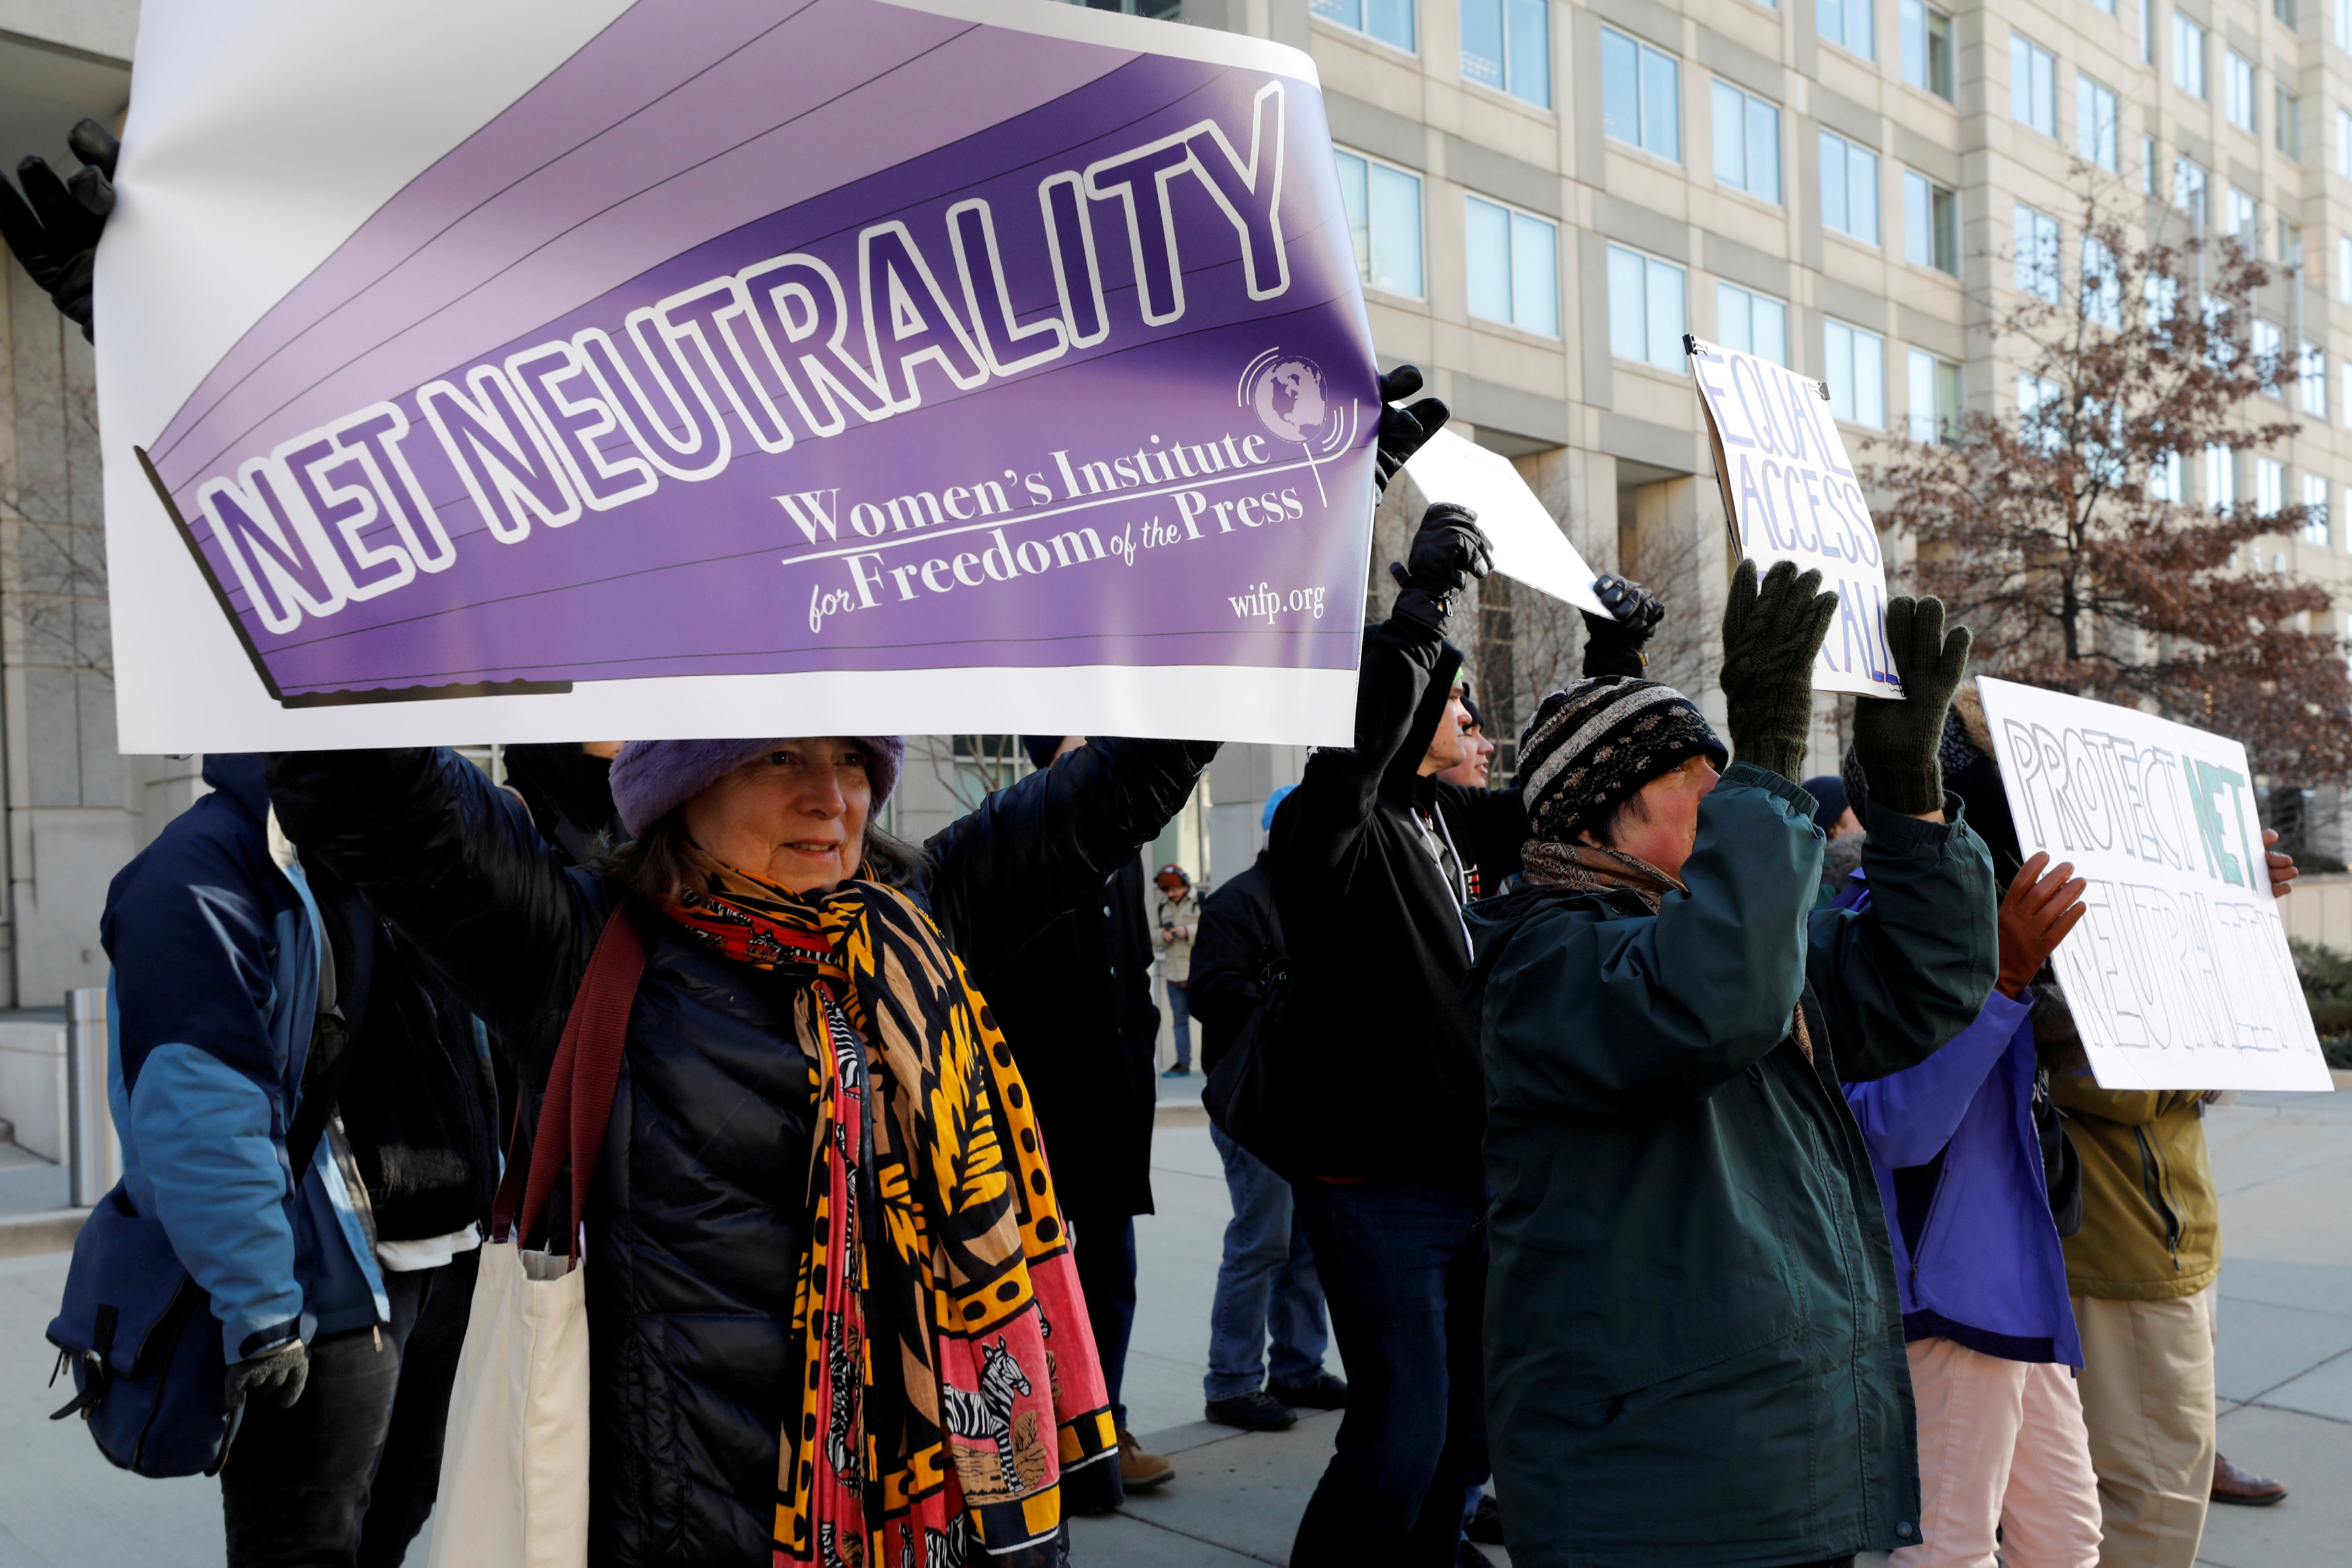 washingtonpost.com - Letters to the Editor - Net neutrality needs a bipartisan approach